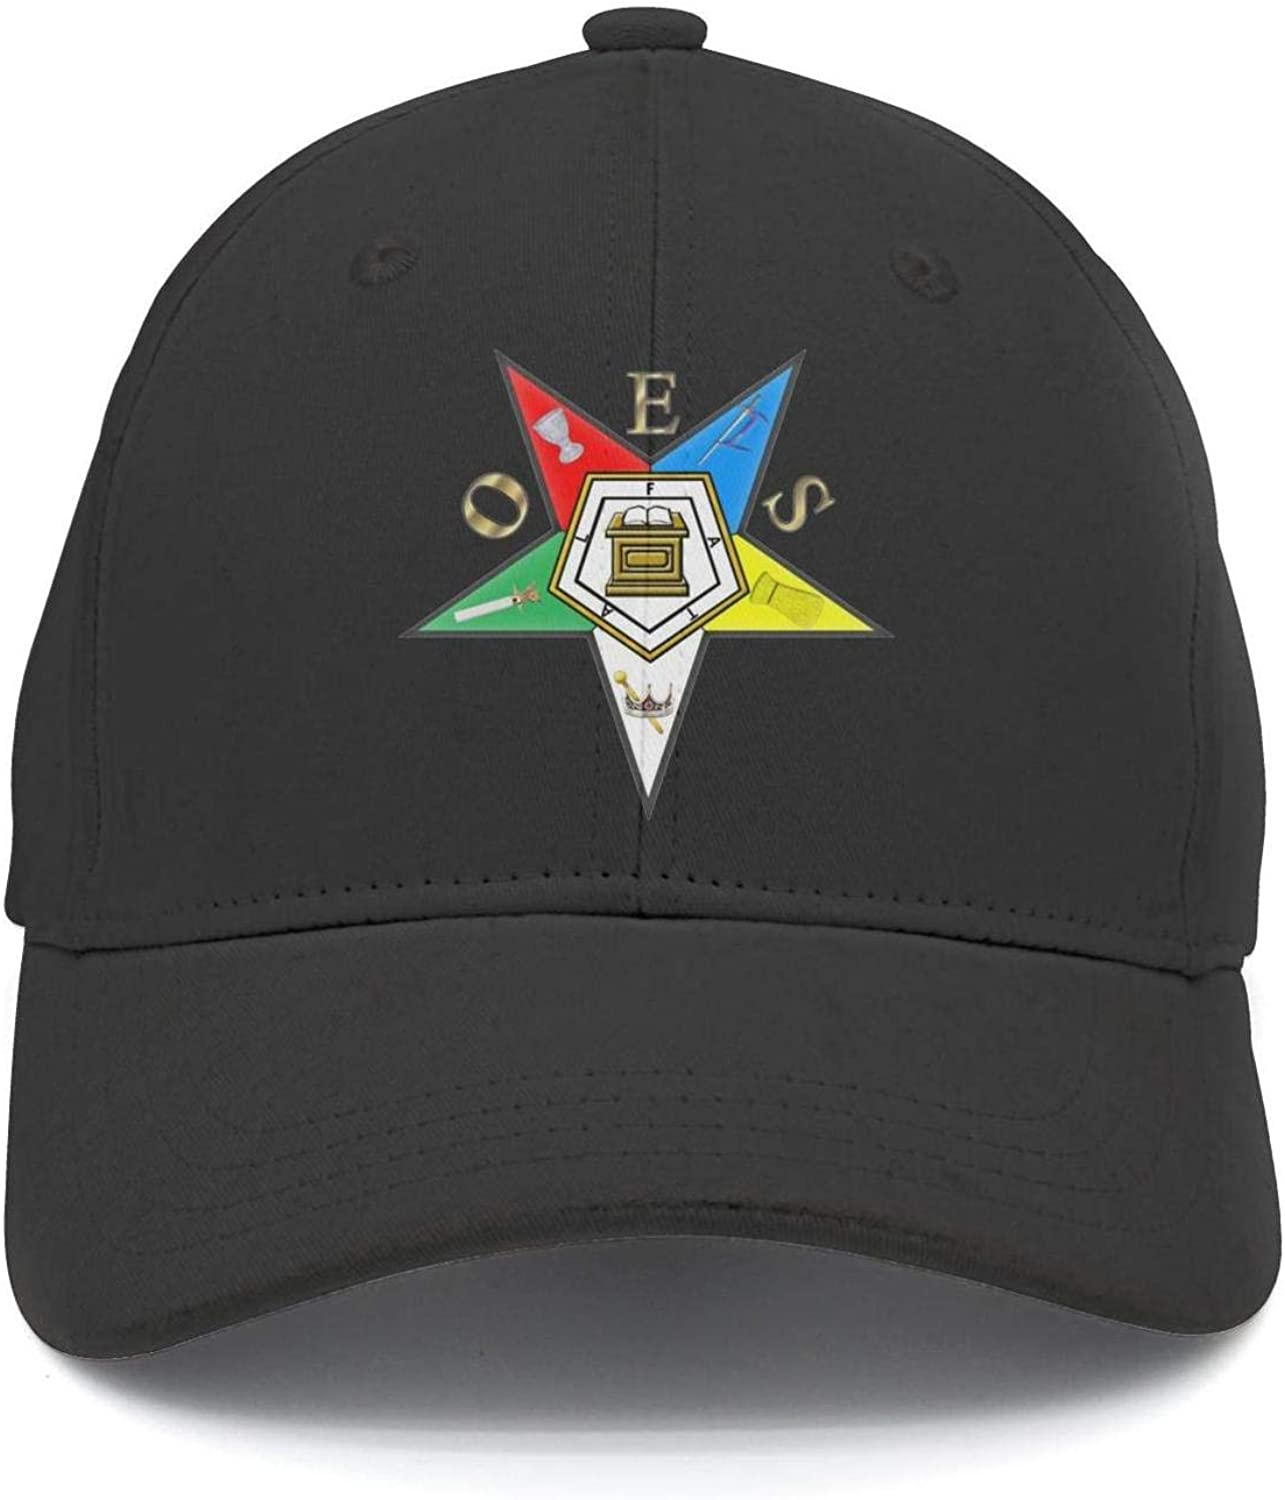 wash Baseball Caps one Size Trucker Hat MontagueMoll Order-Cool-of-The-Eastern-Star